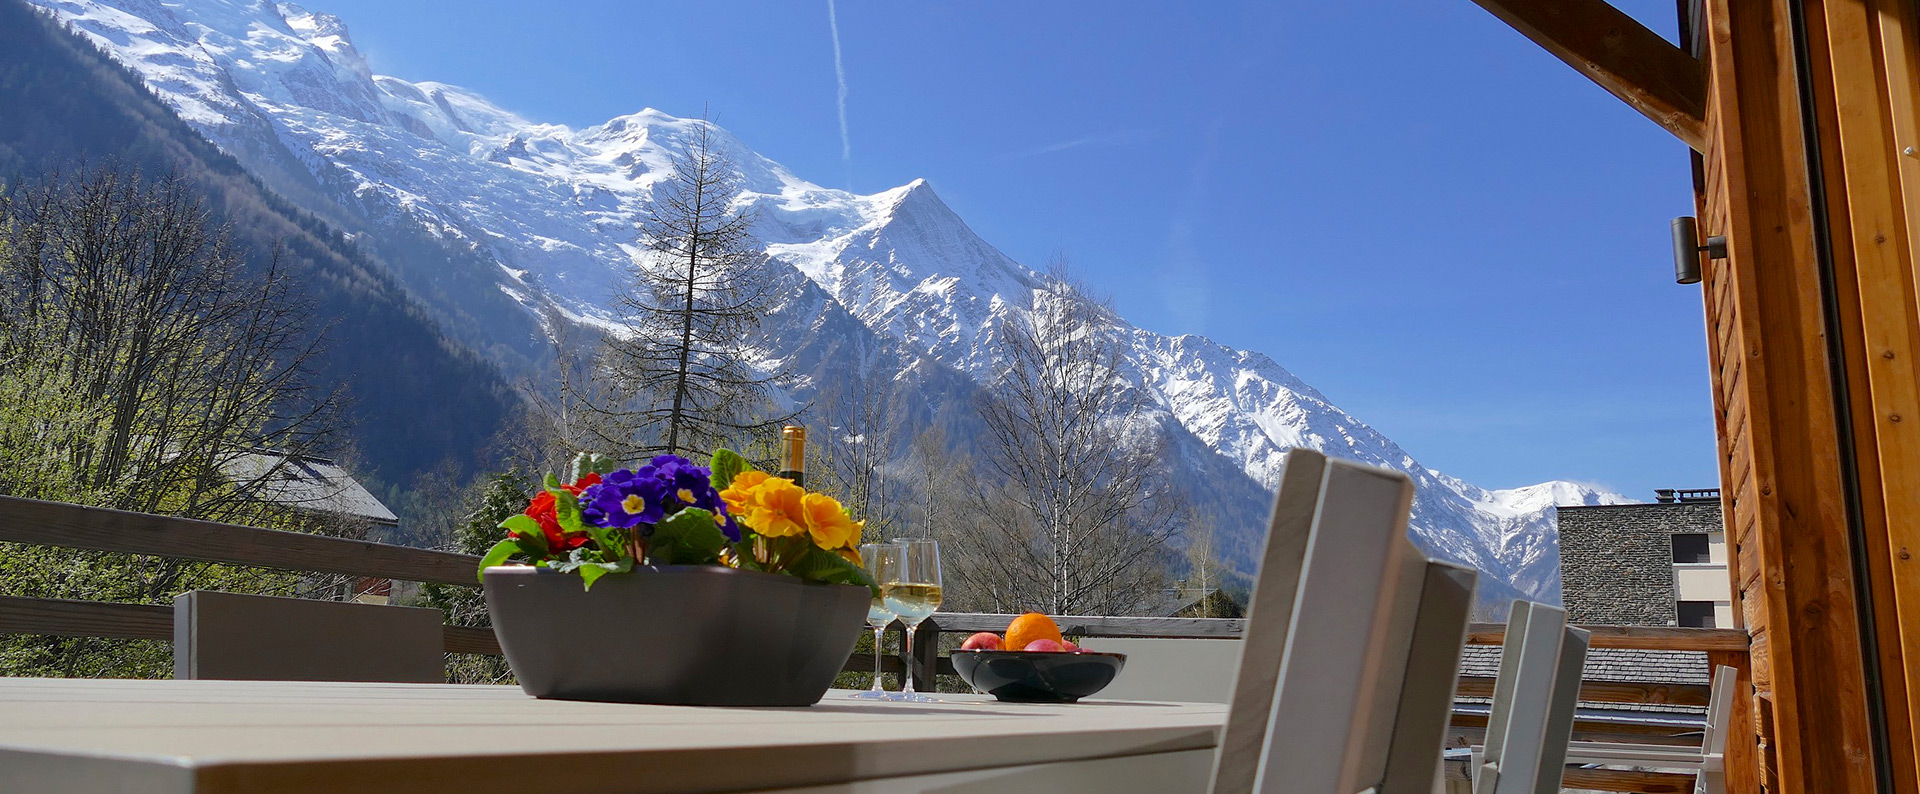 Chaletchampion Location1 Chamonix 17